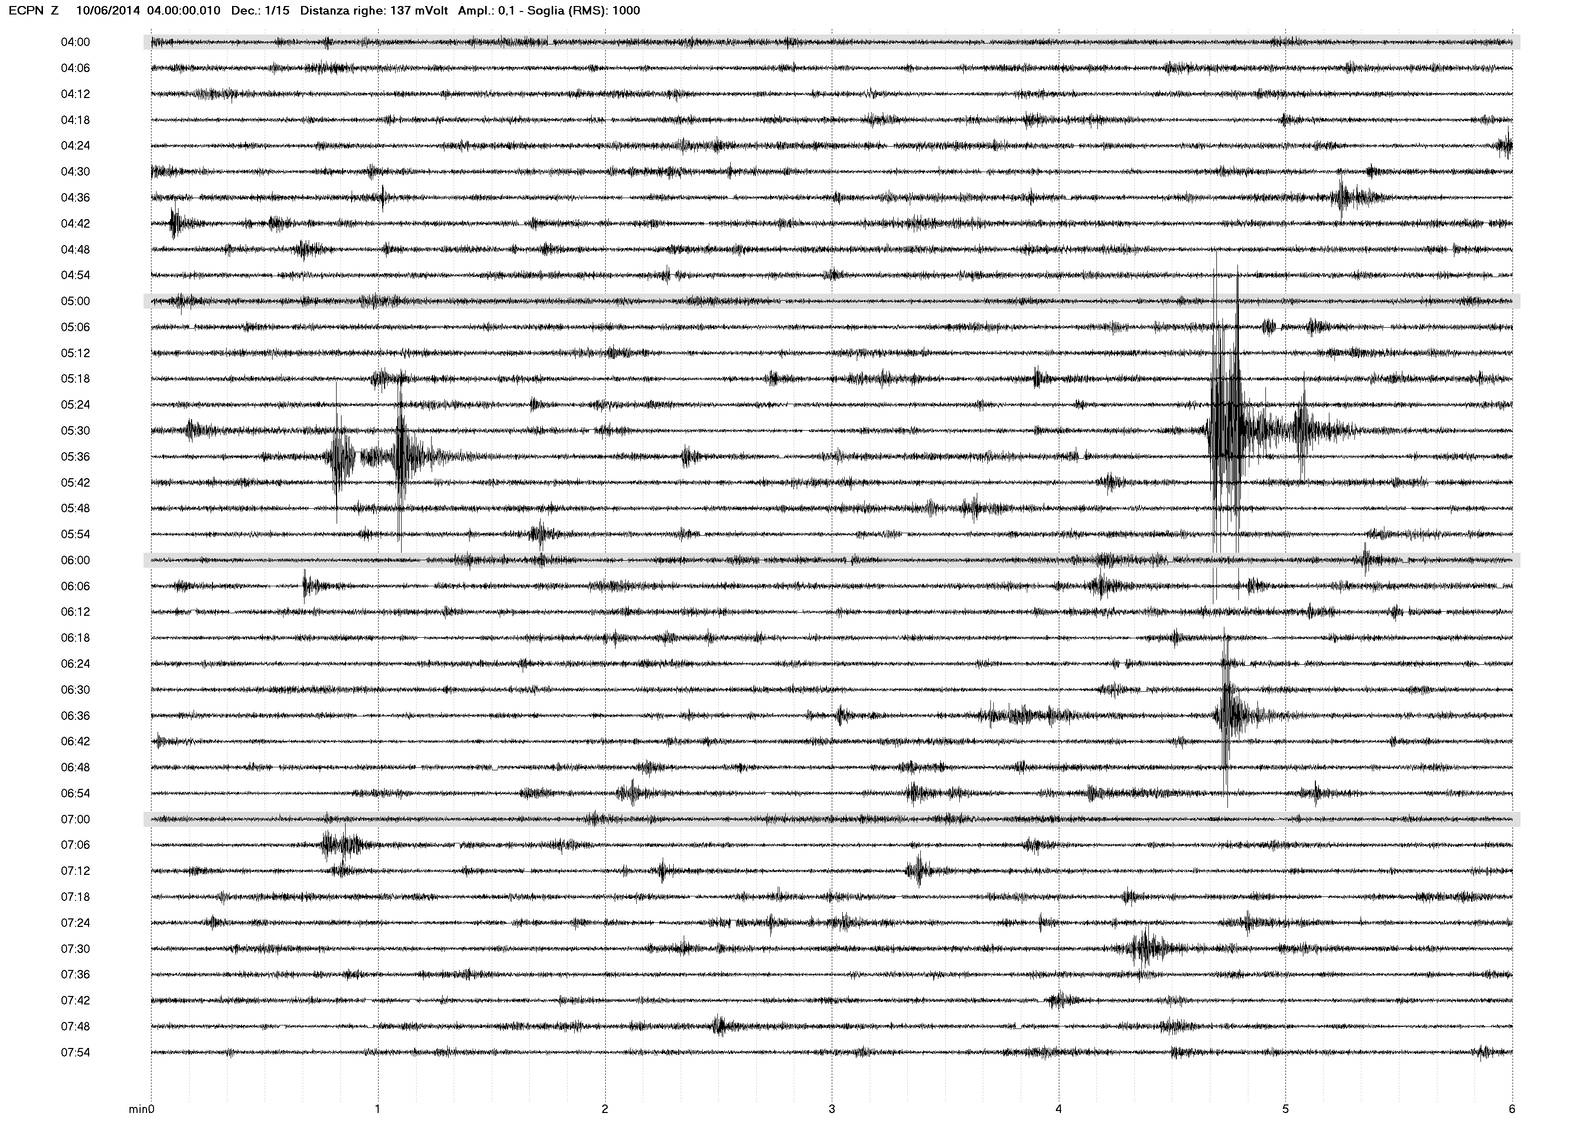 Seismic signal this morning  at ECPN station ( by courtesy of INGV-OE Catania)